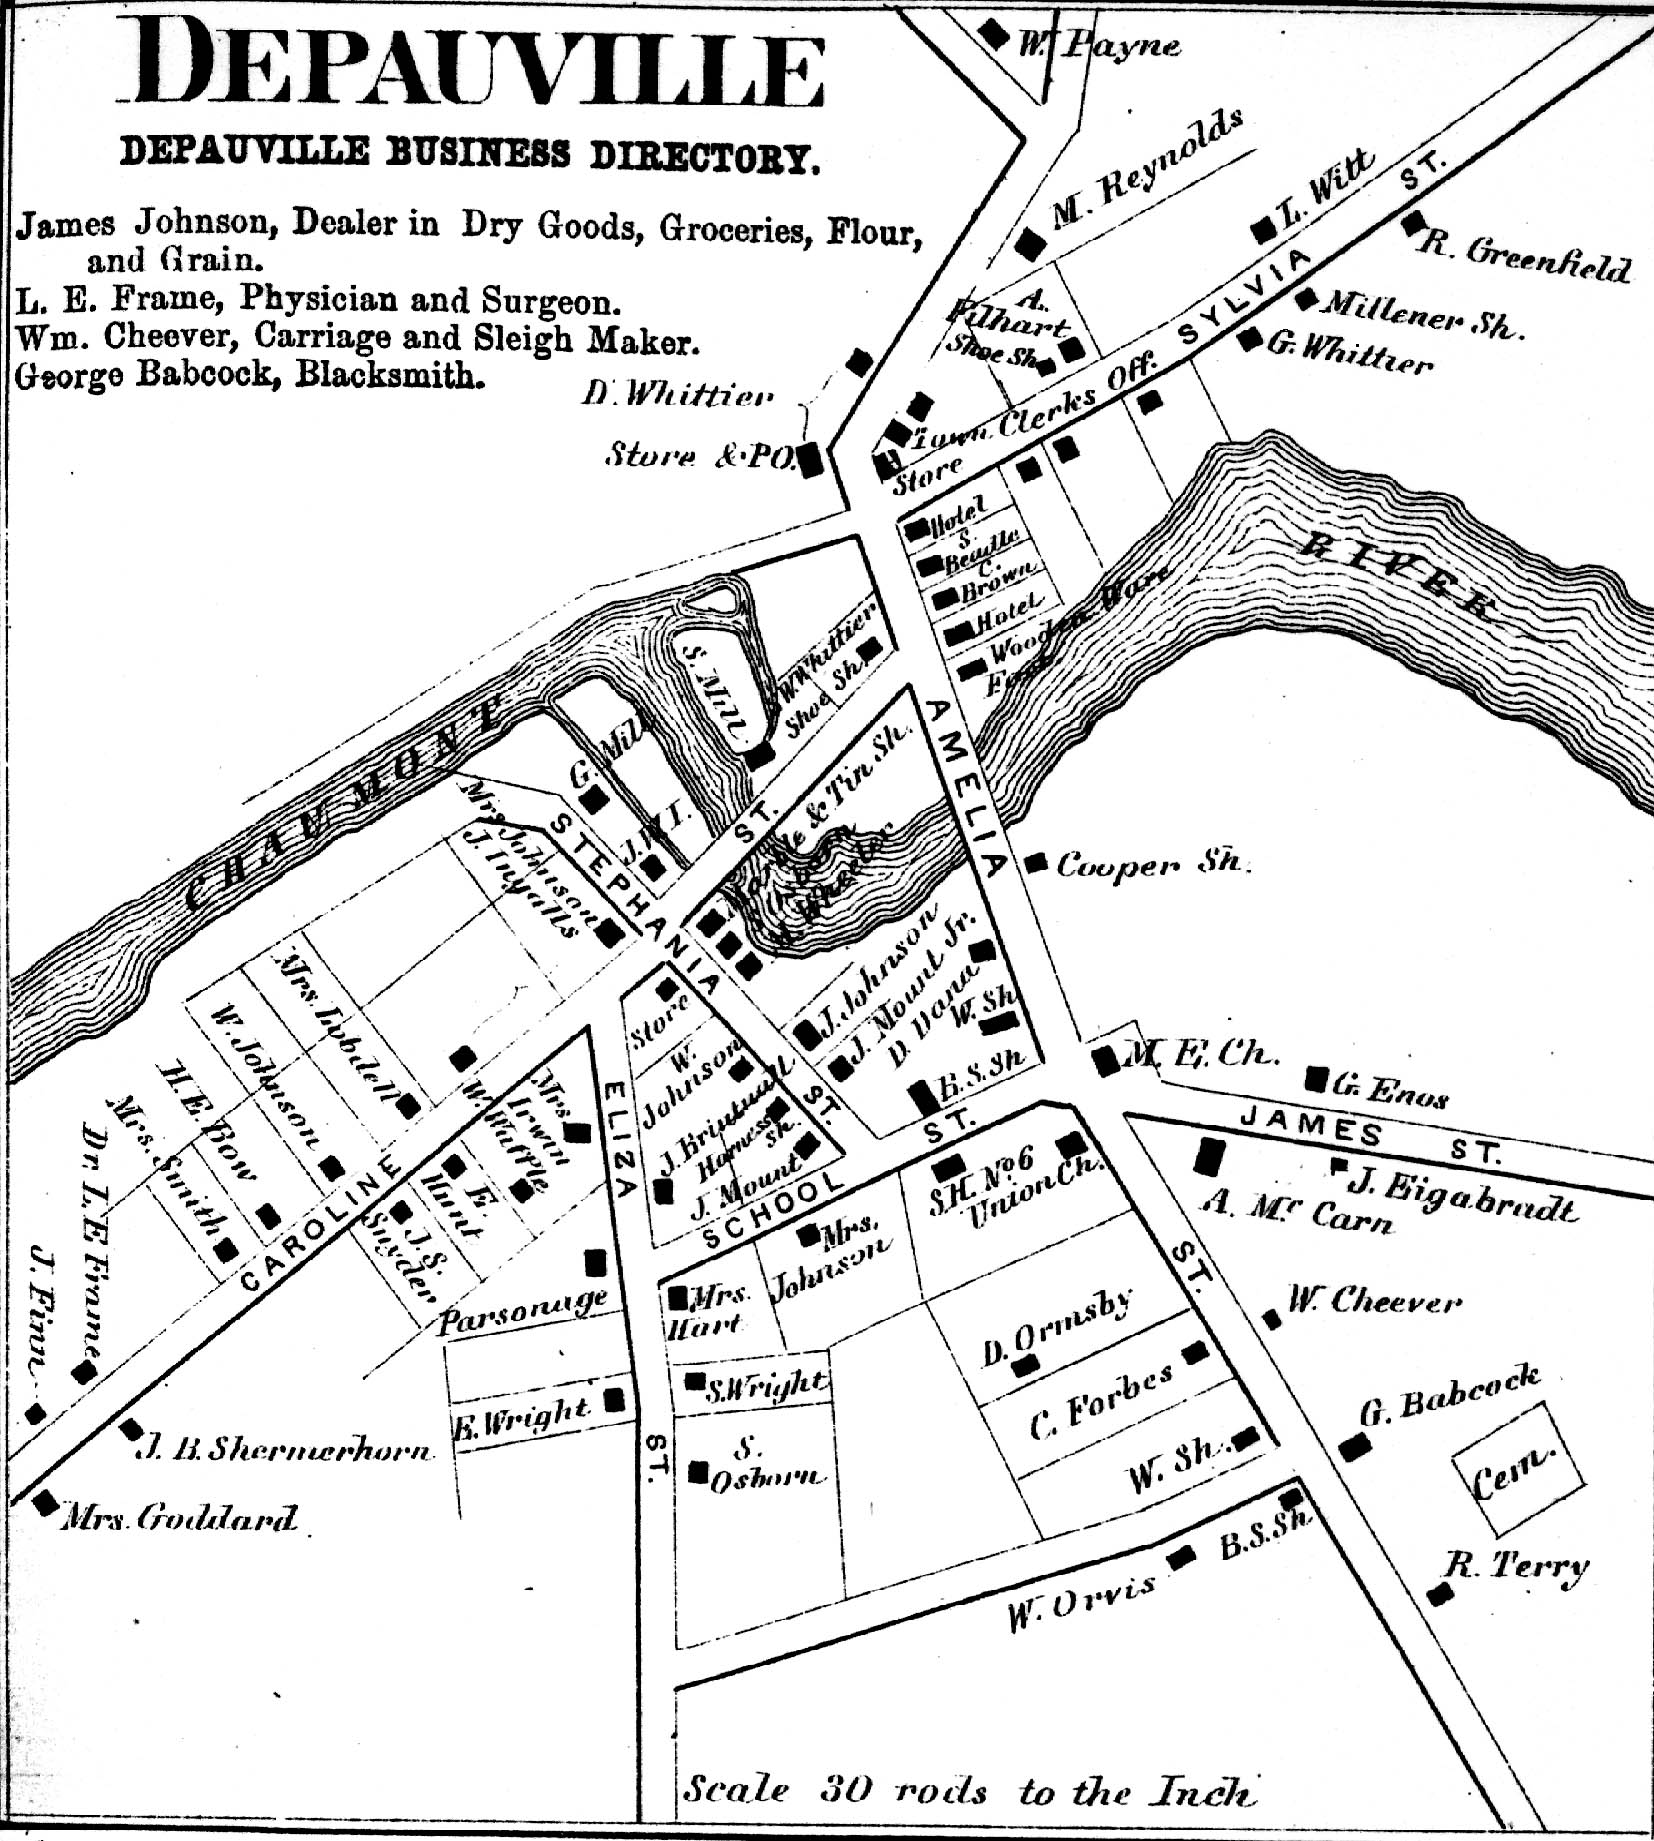 1864 Map of Depauville